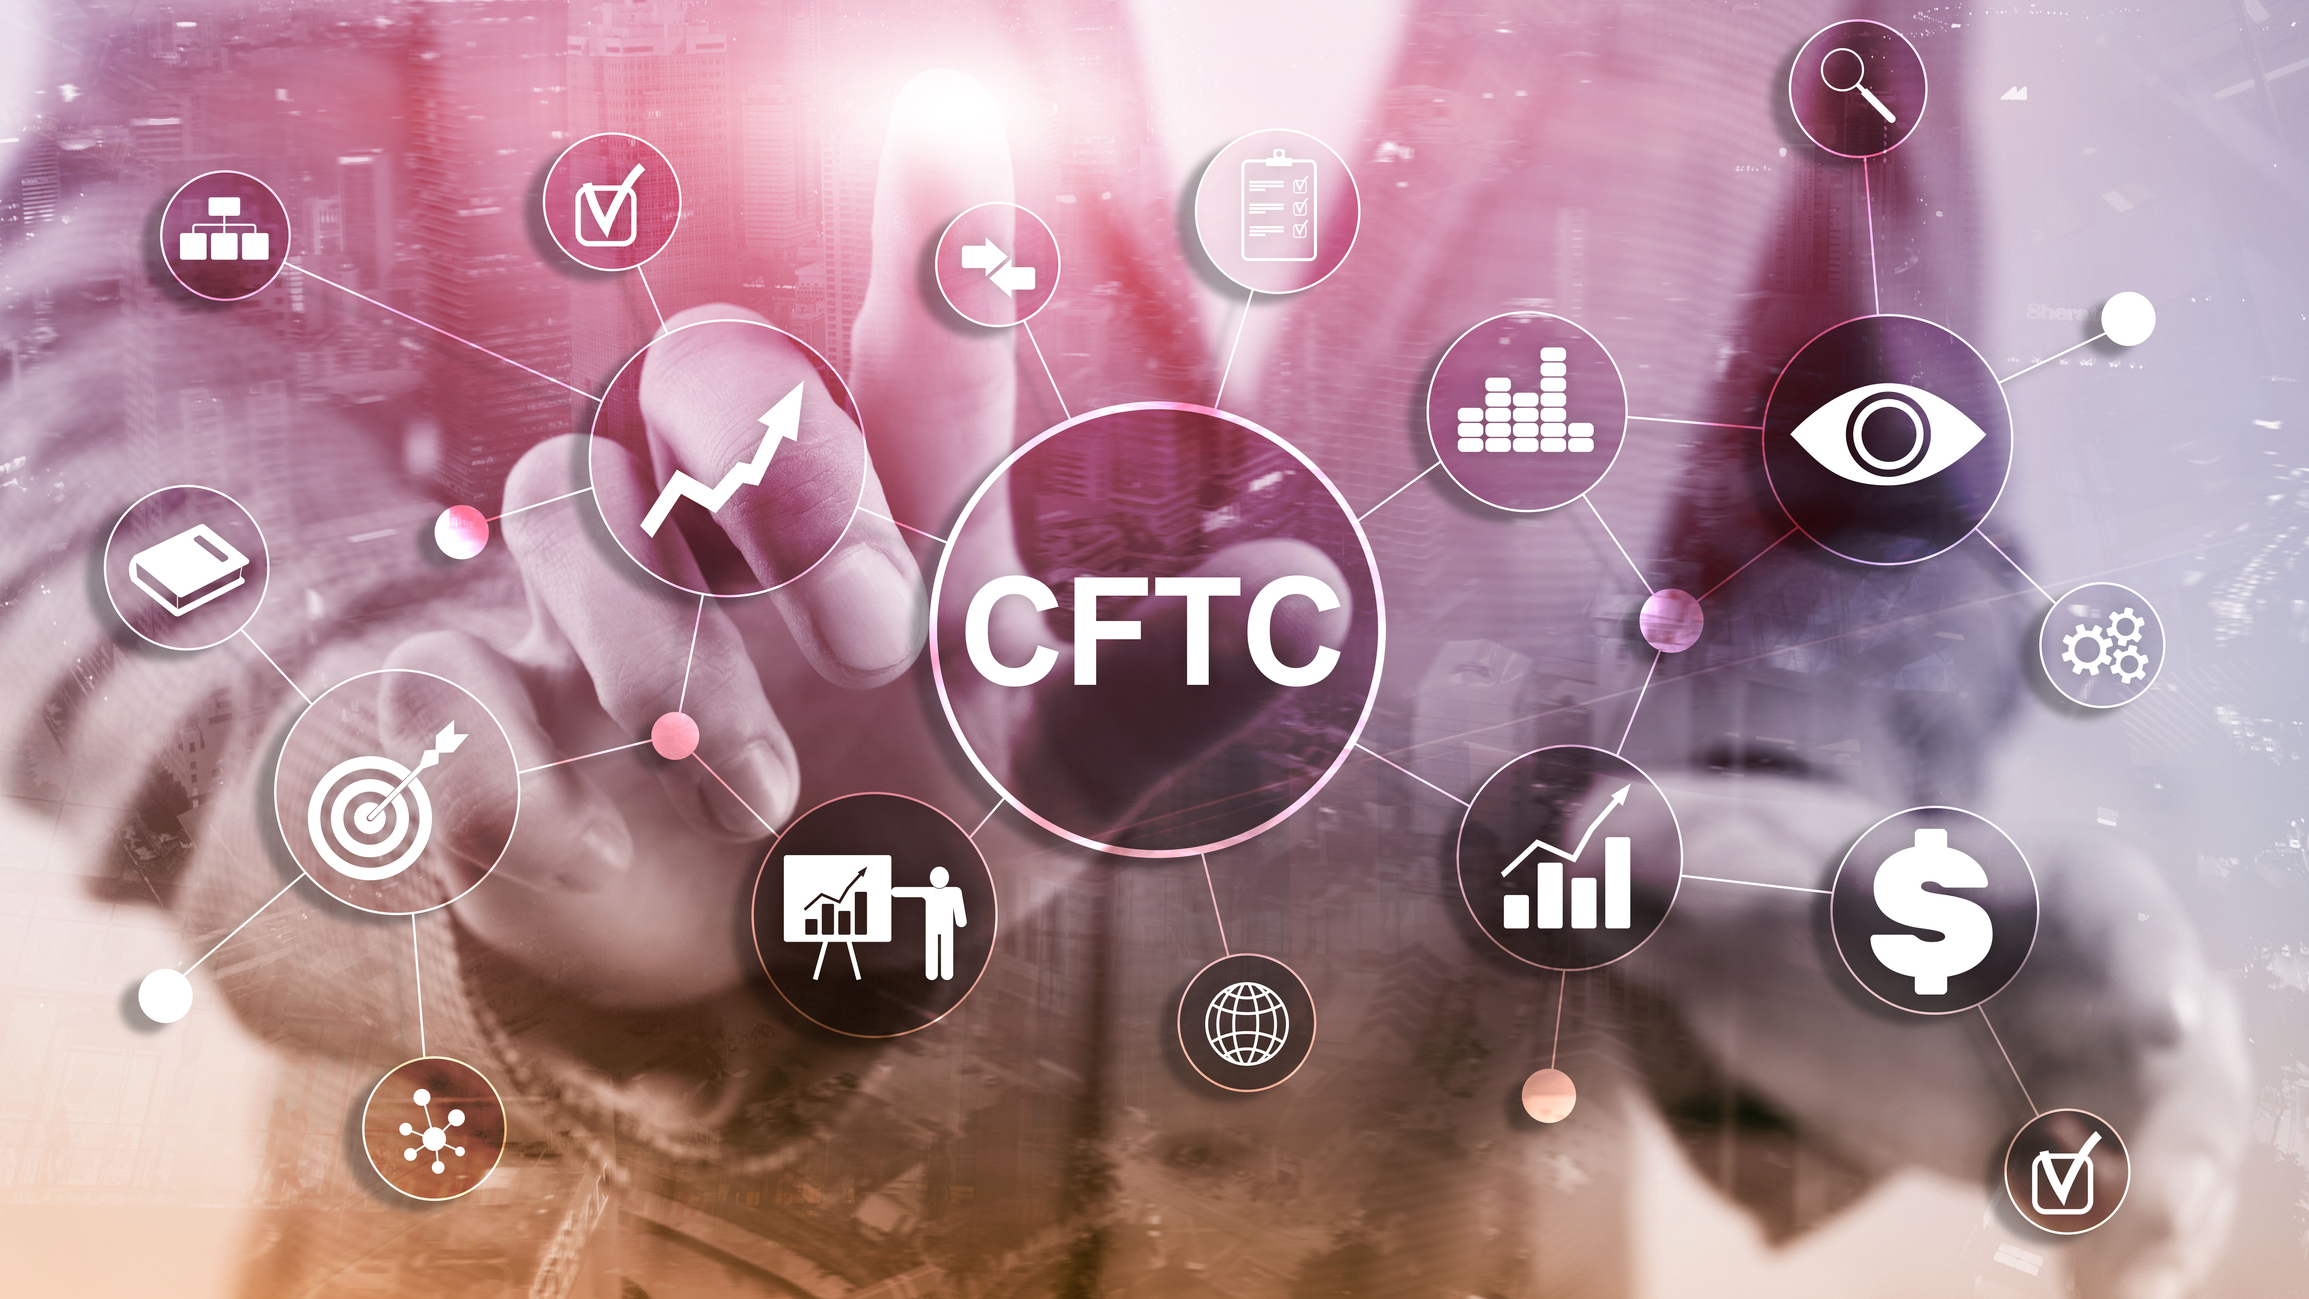 CFTC u.s. commodity futures trading commission business finance regulation concept.